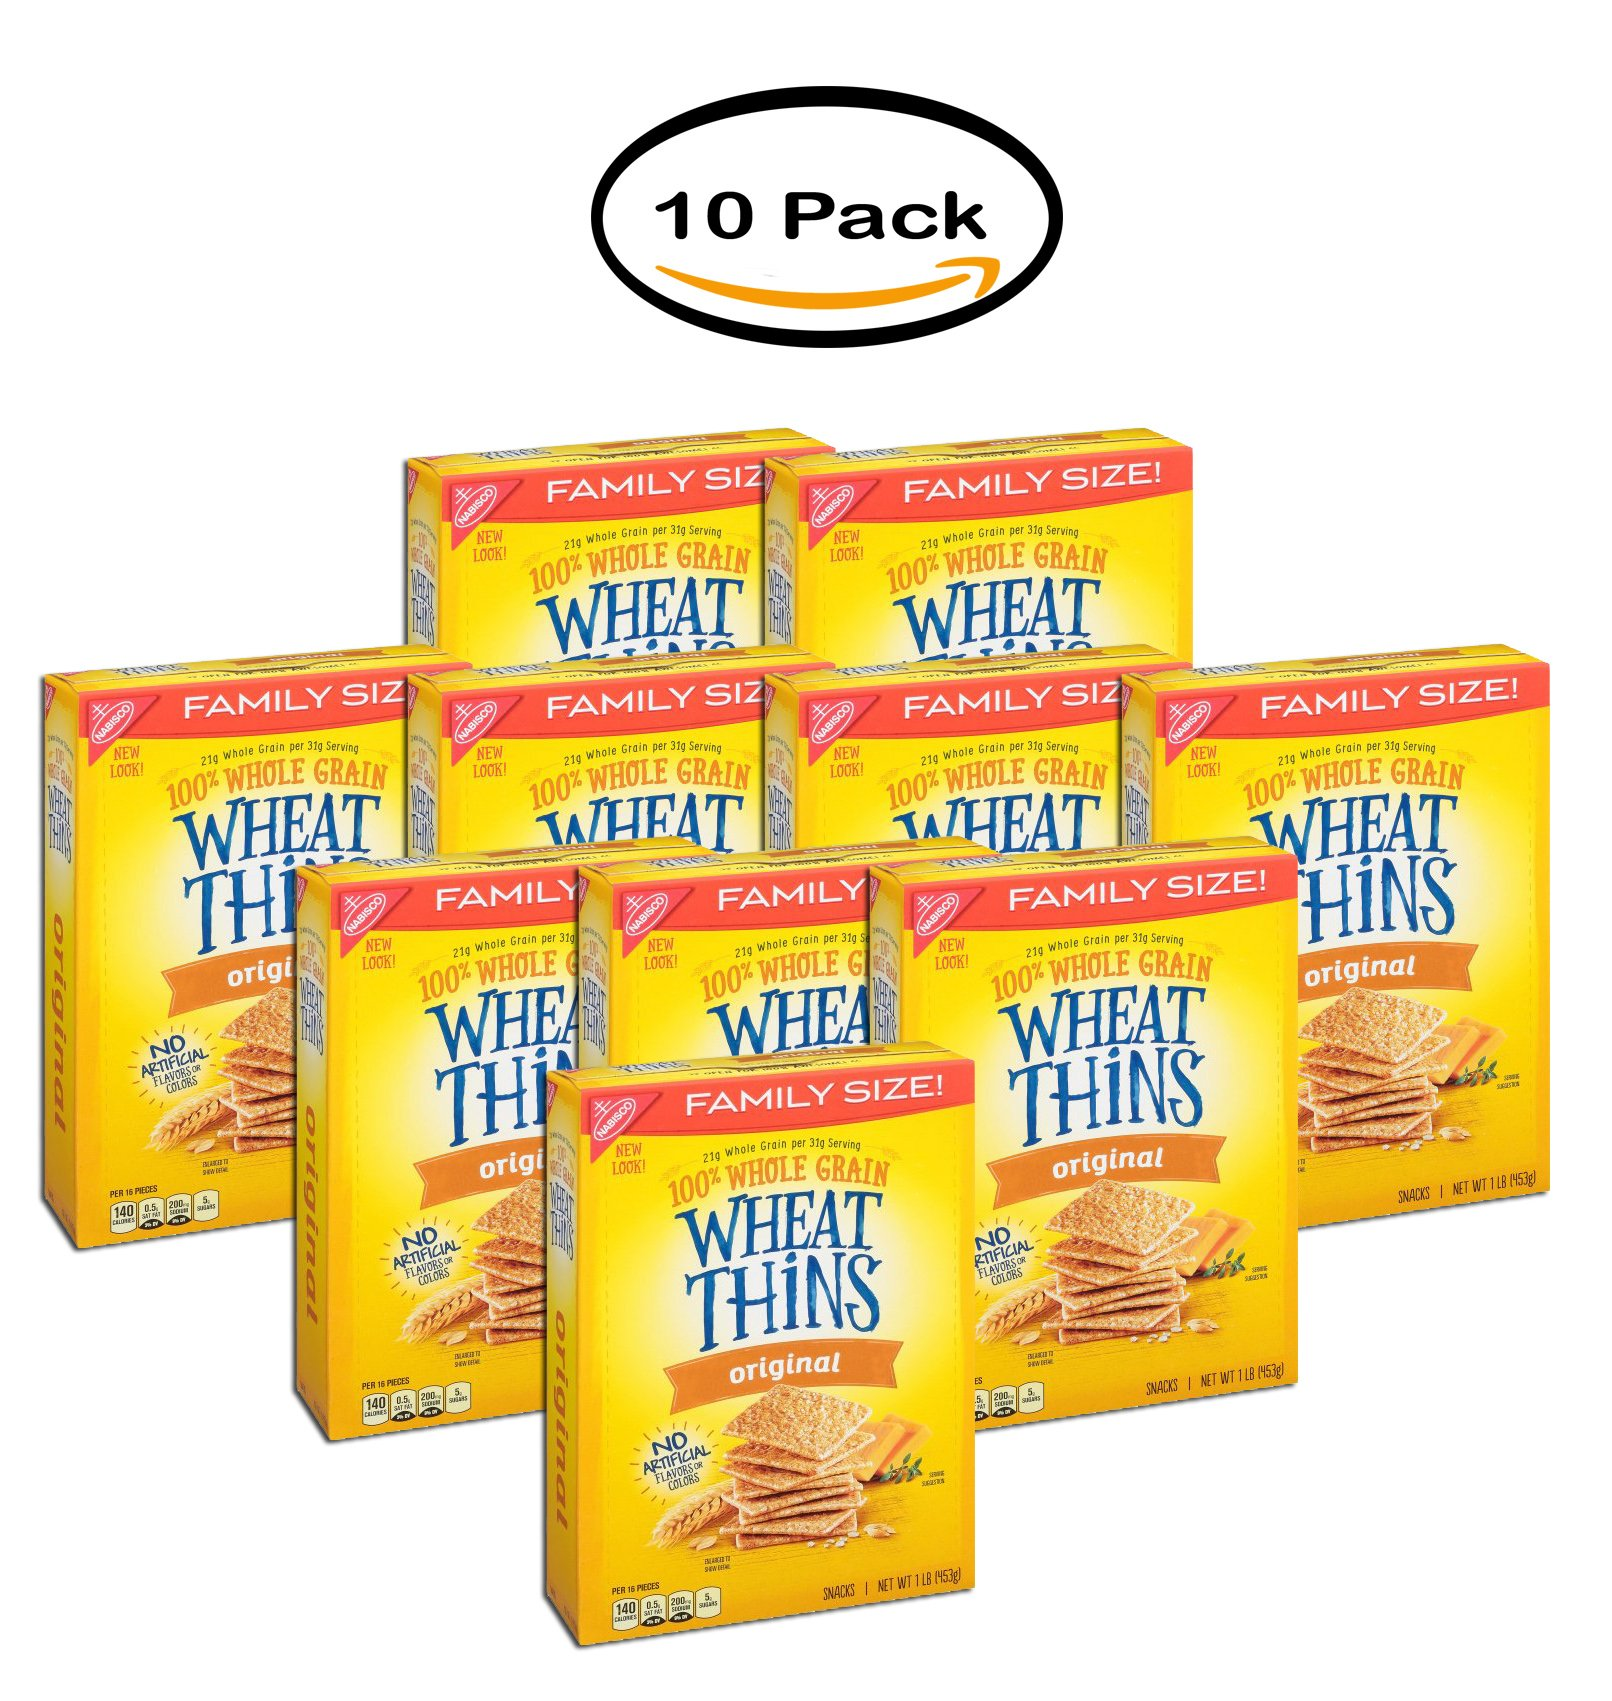 PACK OF 10 - Nabisco Original Family Size Wheat Thins Crackers, 16.0 OZ by Nabisco